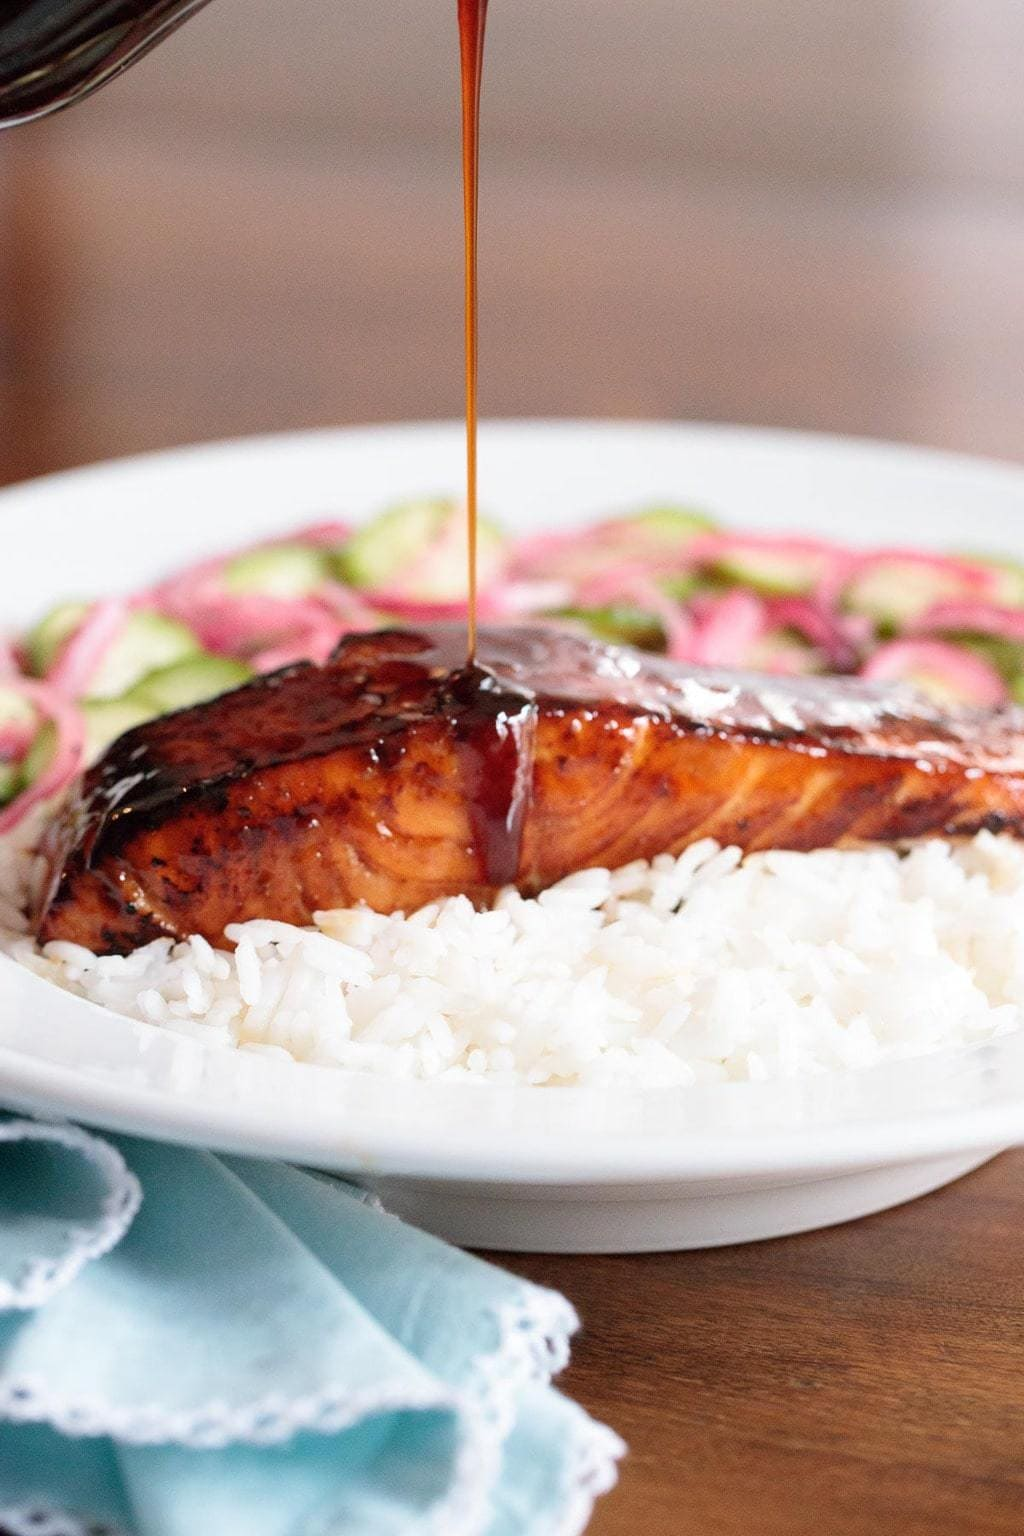 Photo of a plate of Honey Coriander Make-Ahead Salmon with an Asian sauce being drizzled over the top of the salmon.